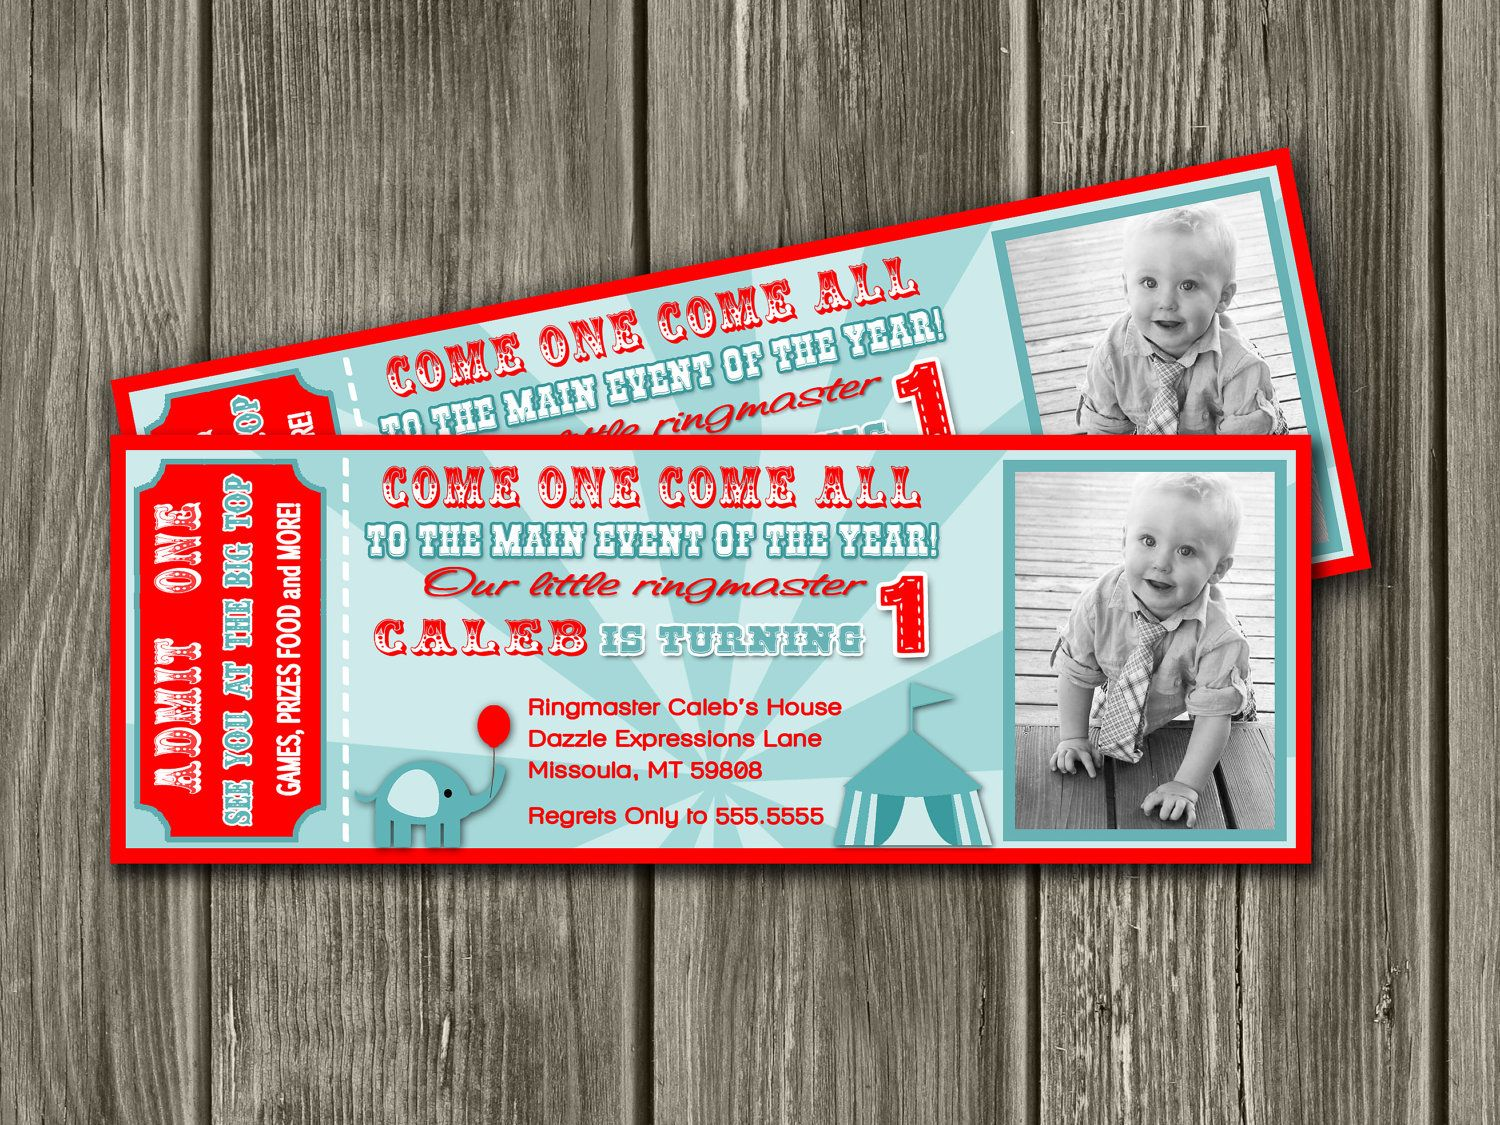 Vintage Circus Ticket Invitation FREE Thank You Card Included - Birthday invitation cards circus